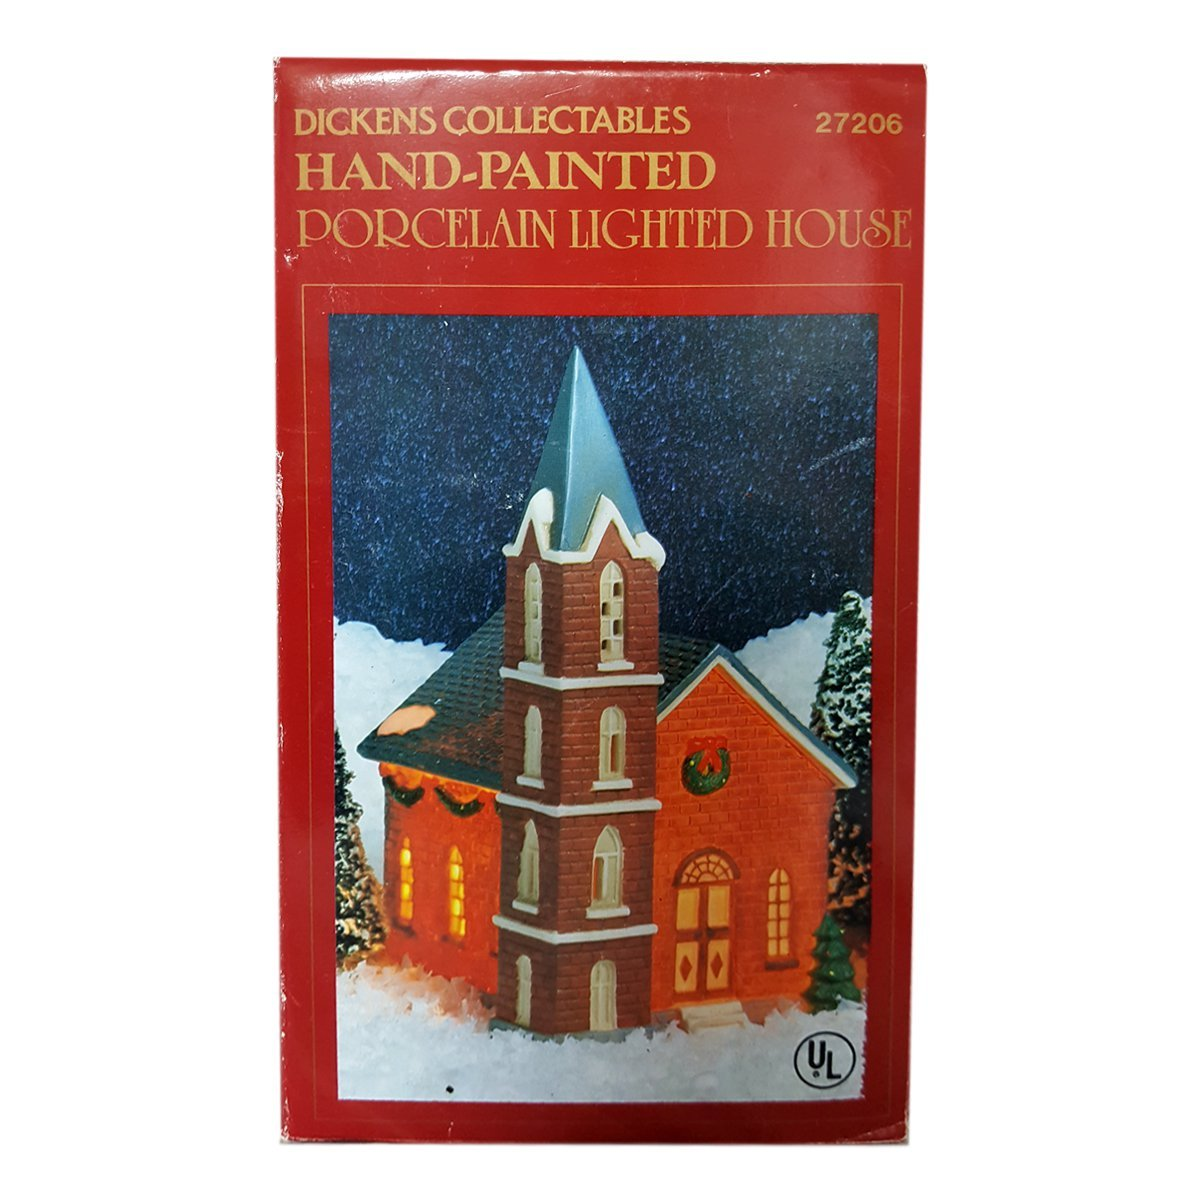 Dickens Collectibles Hand-Painted Porcelain Lighted Church